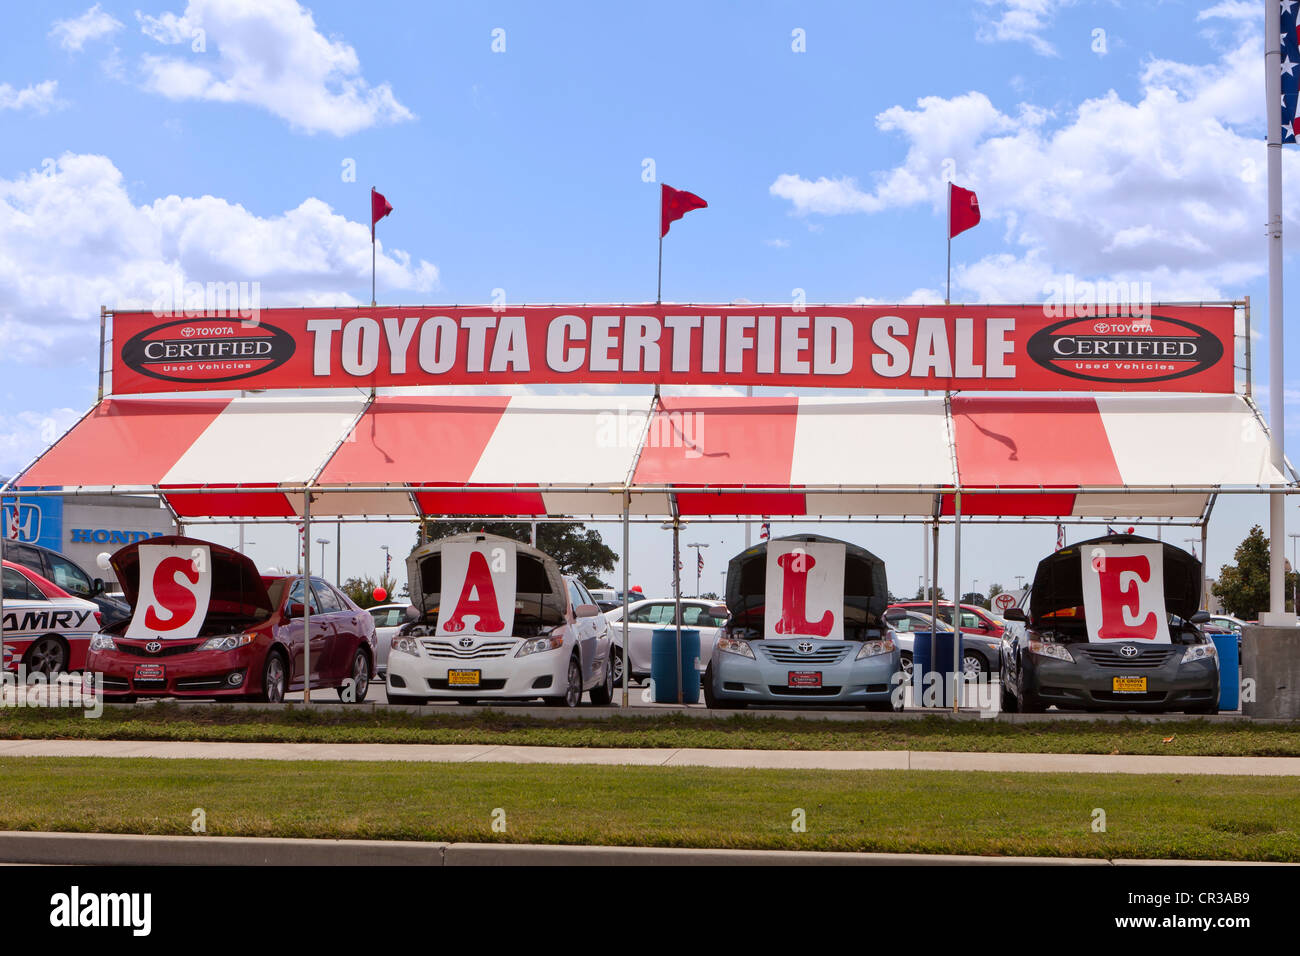 Used Car Sales Stock Photos & Used Car Sales Stock Images - Alamy